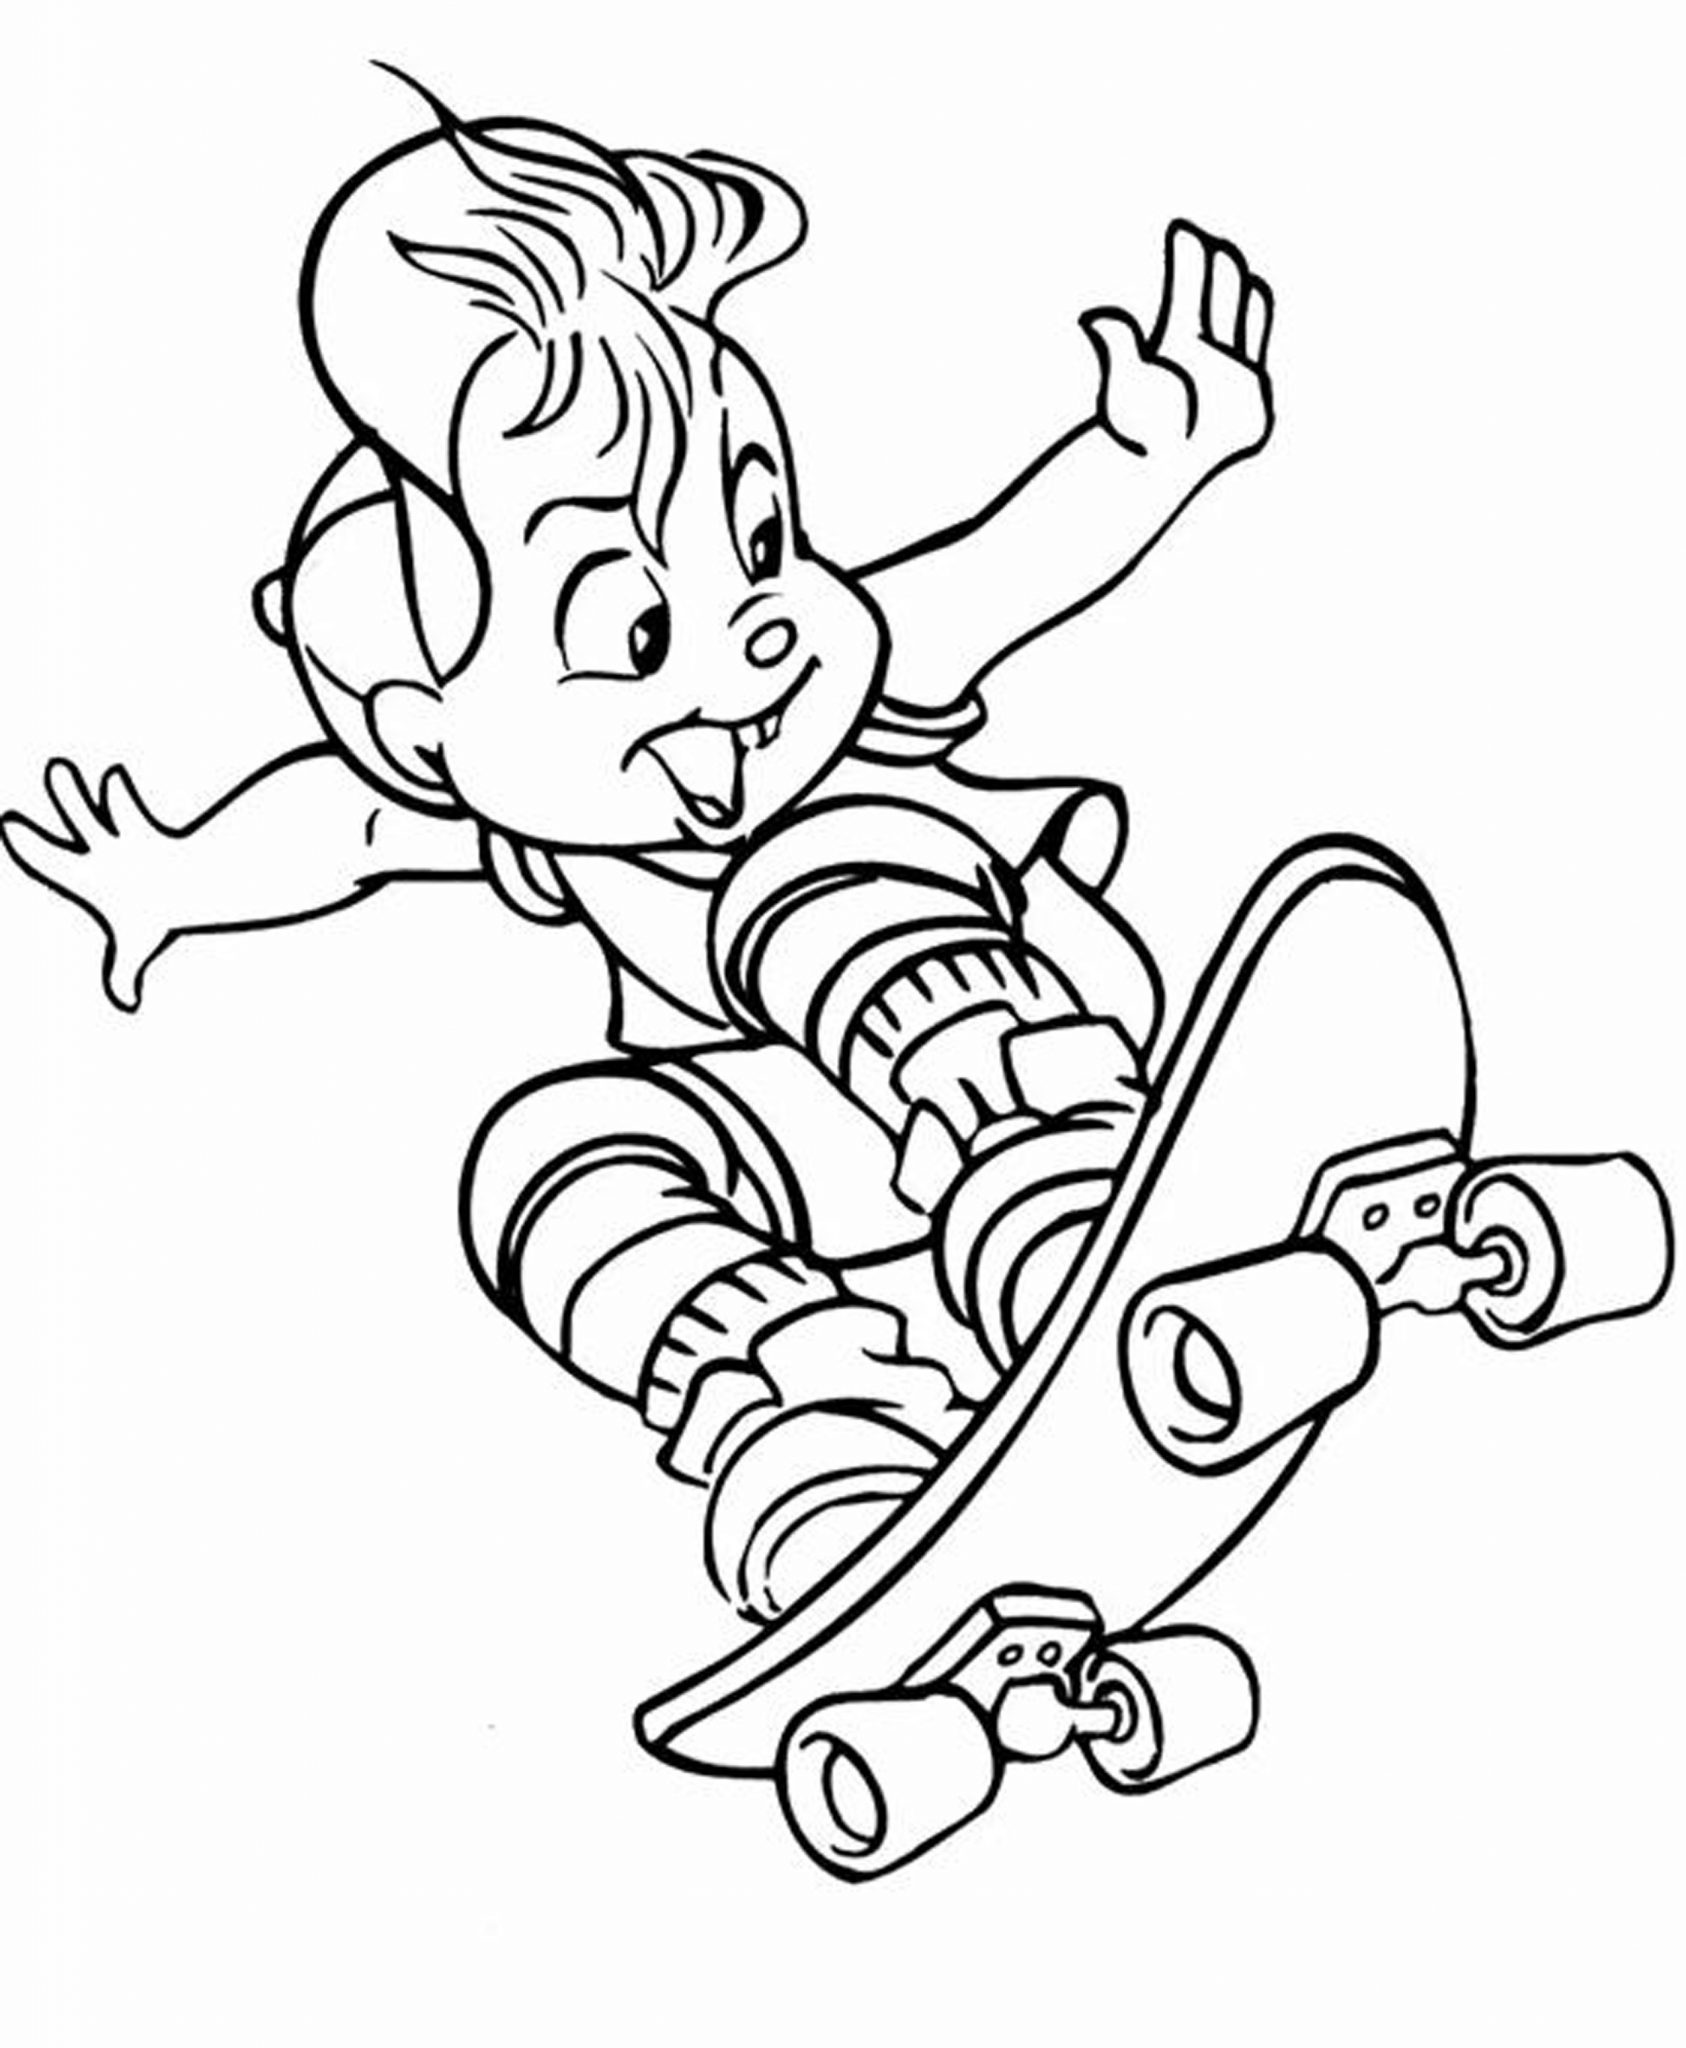 coloring sheet for boy coloring pages for boys training shopping for children coloring boy sheet for